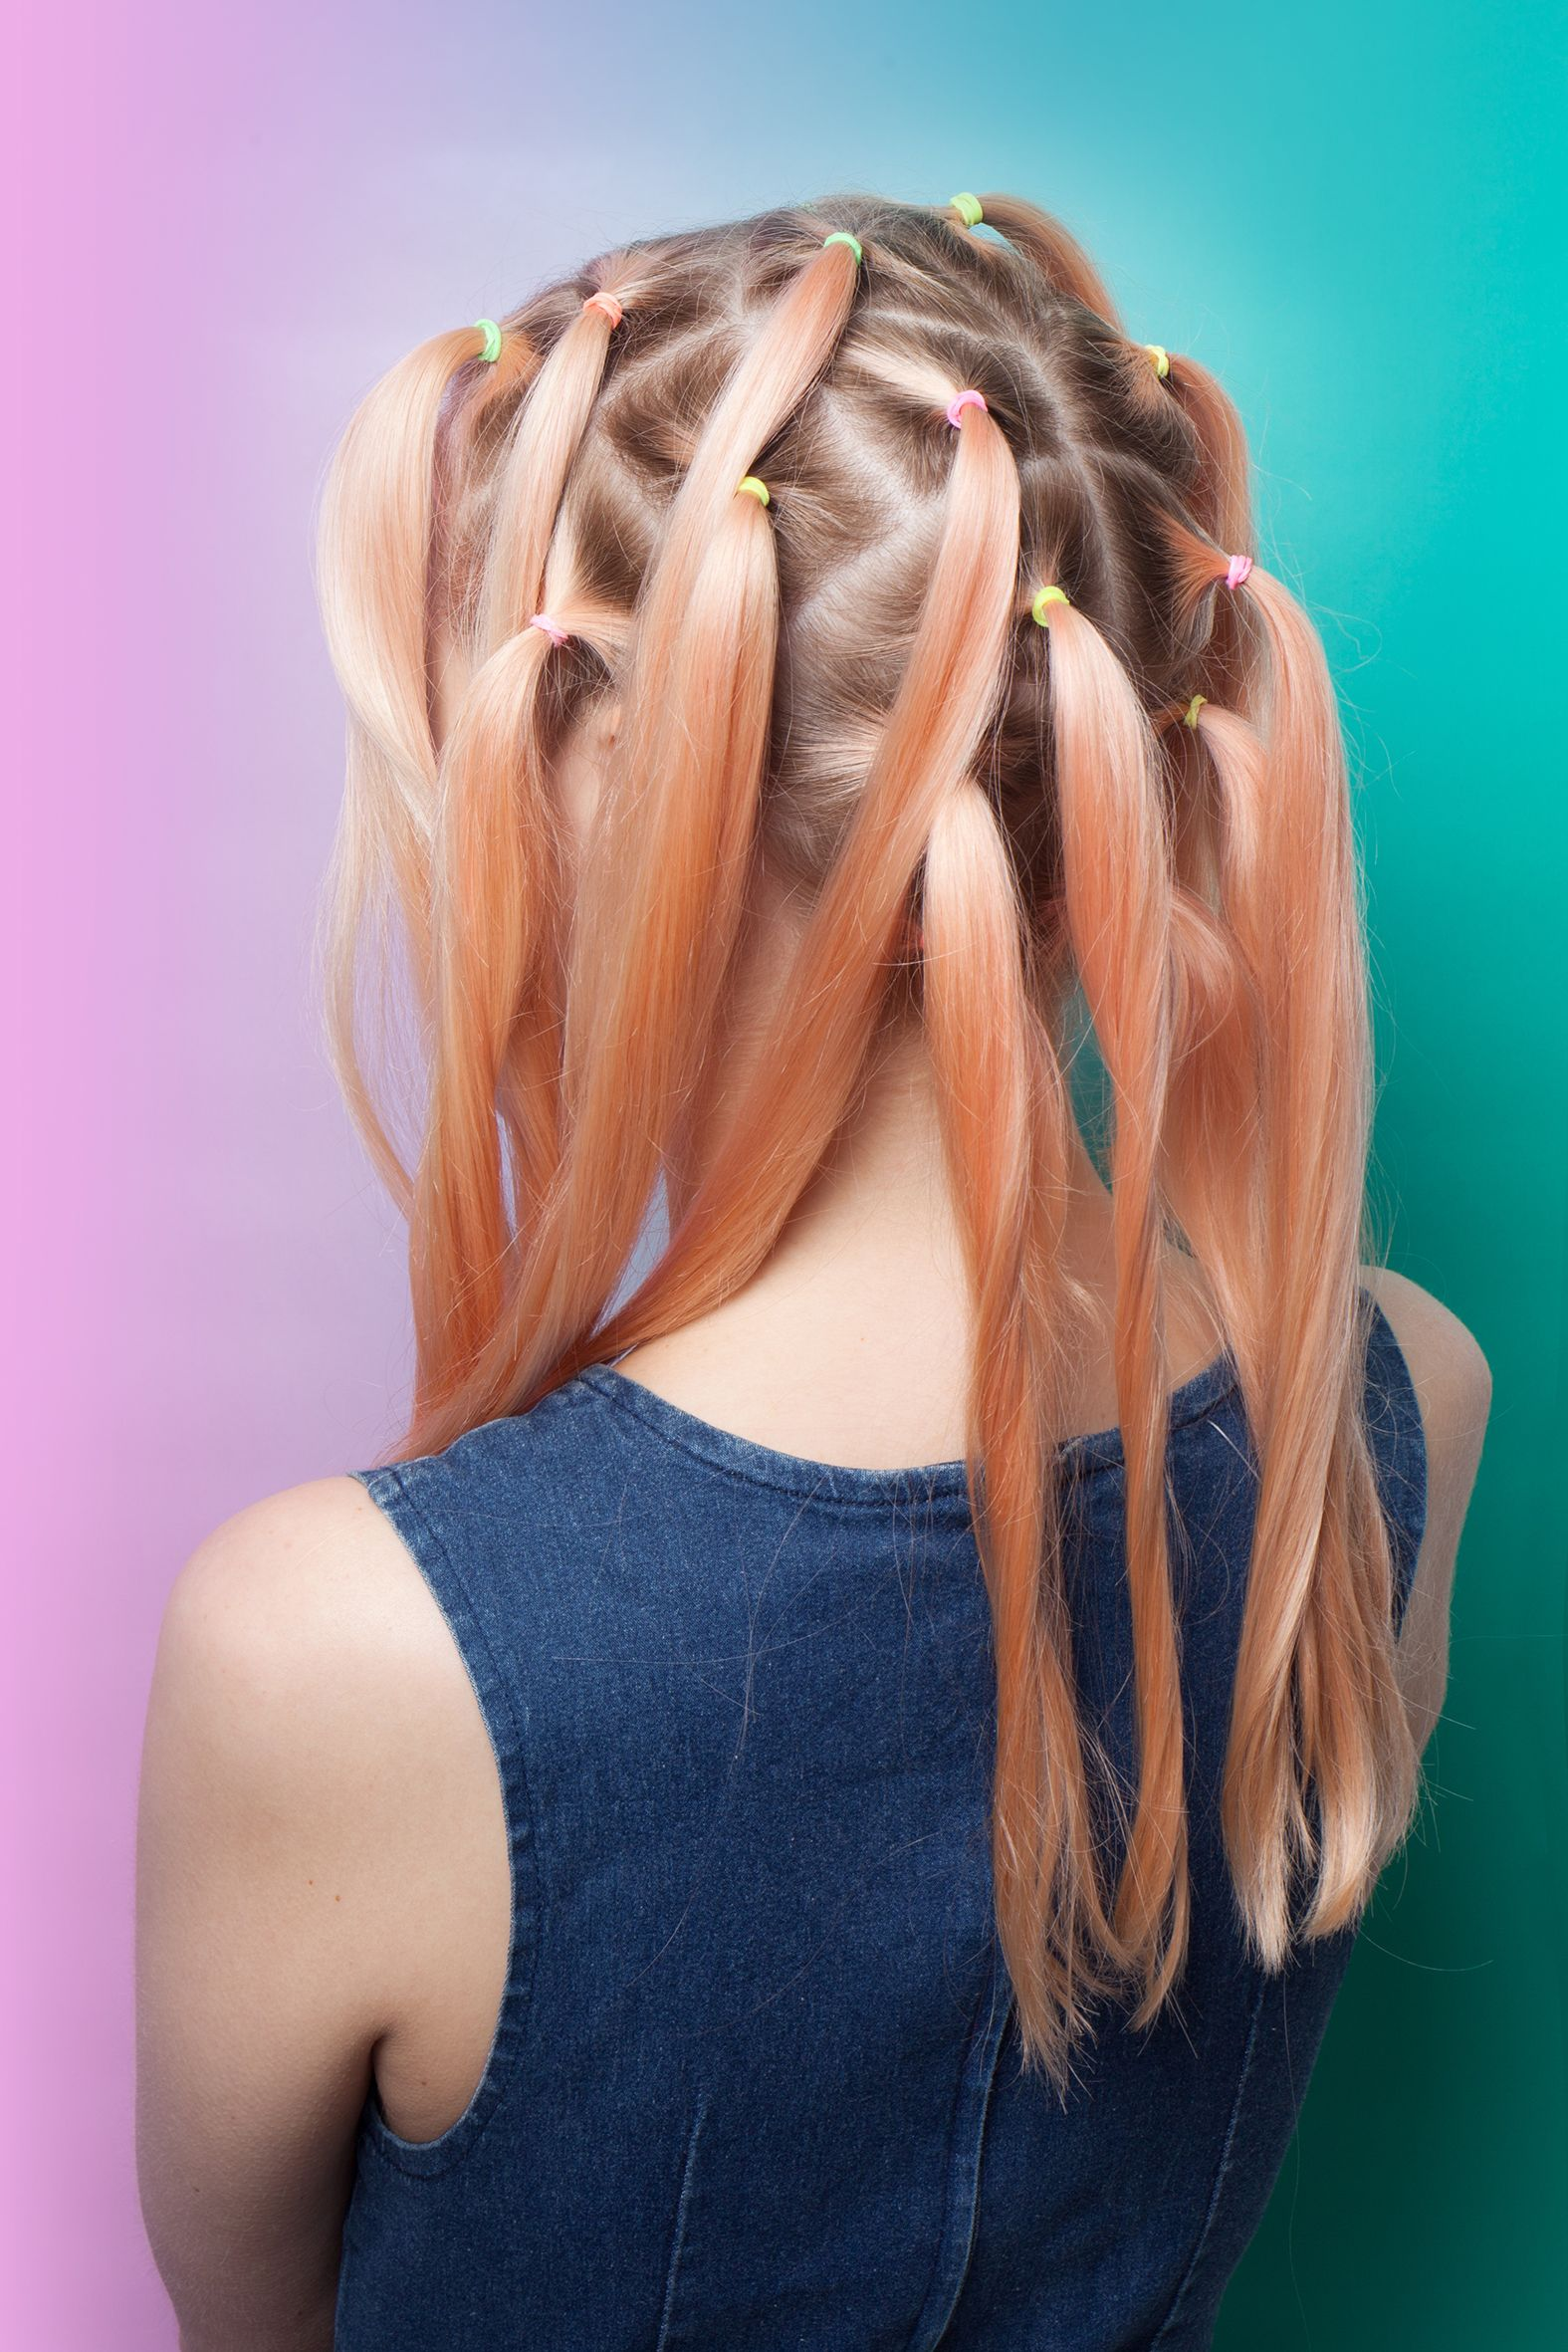 What Is Sunbun The New Hair Coloring Technique That Incorporates Top Knots And 90s Tie Dye Hair Dye Techniques Hair Color Techniques Tie Dye Hair